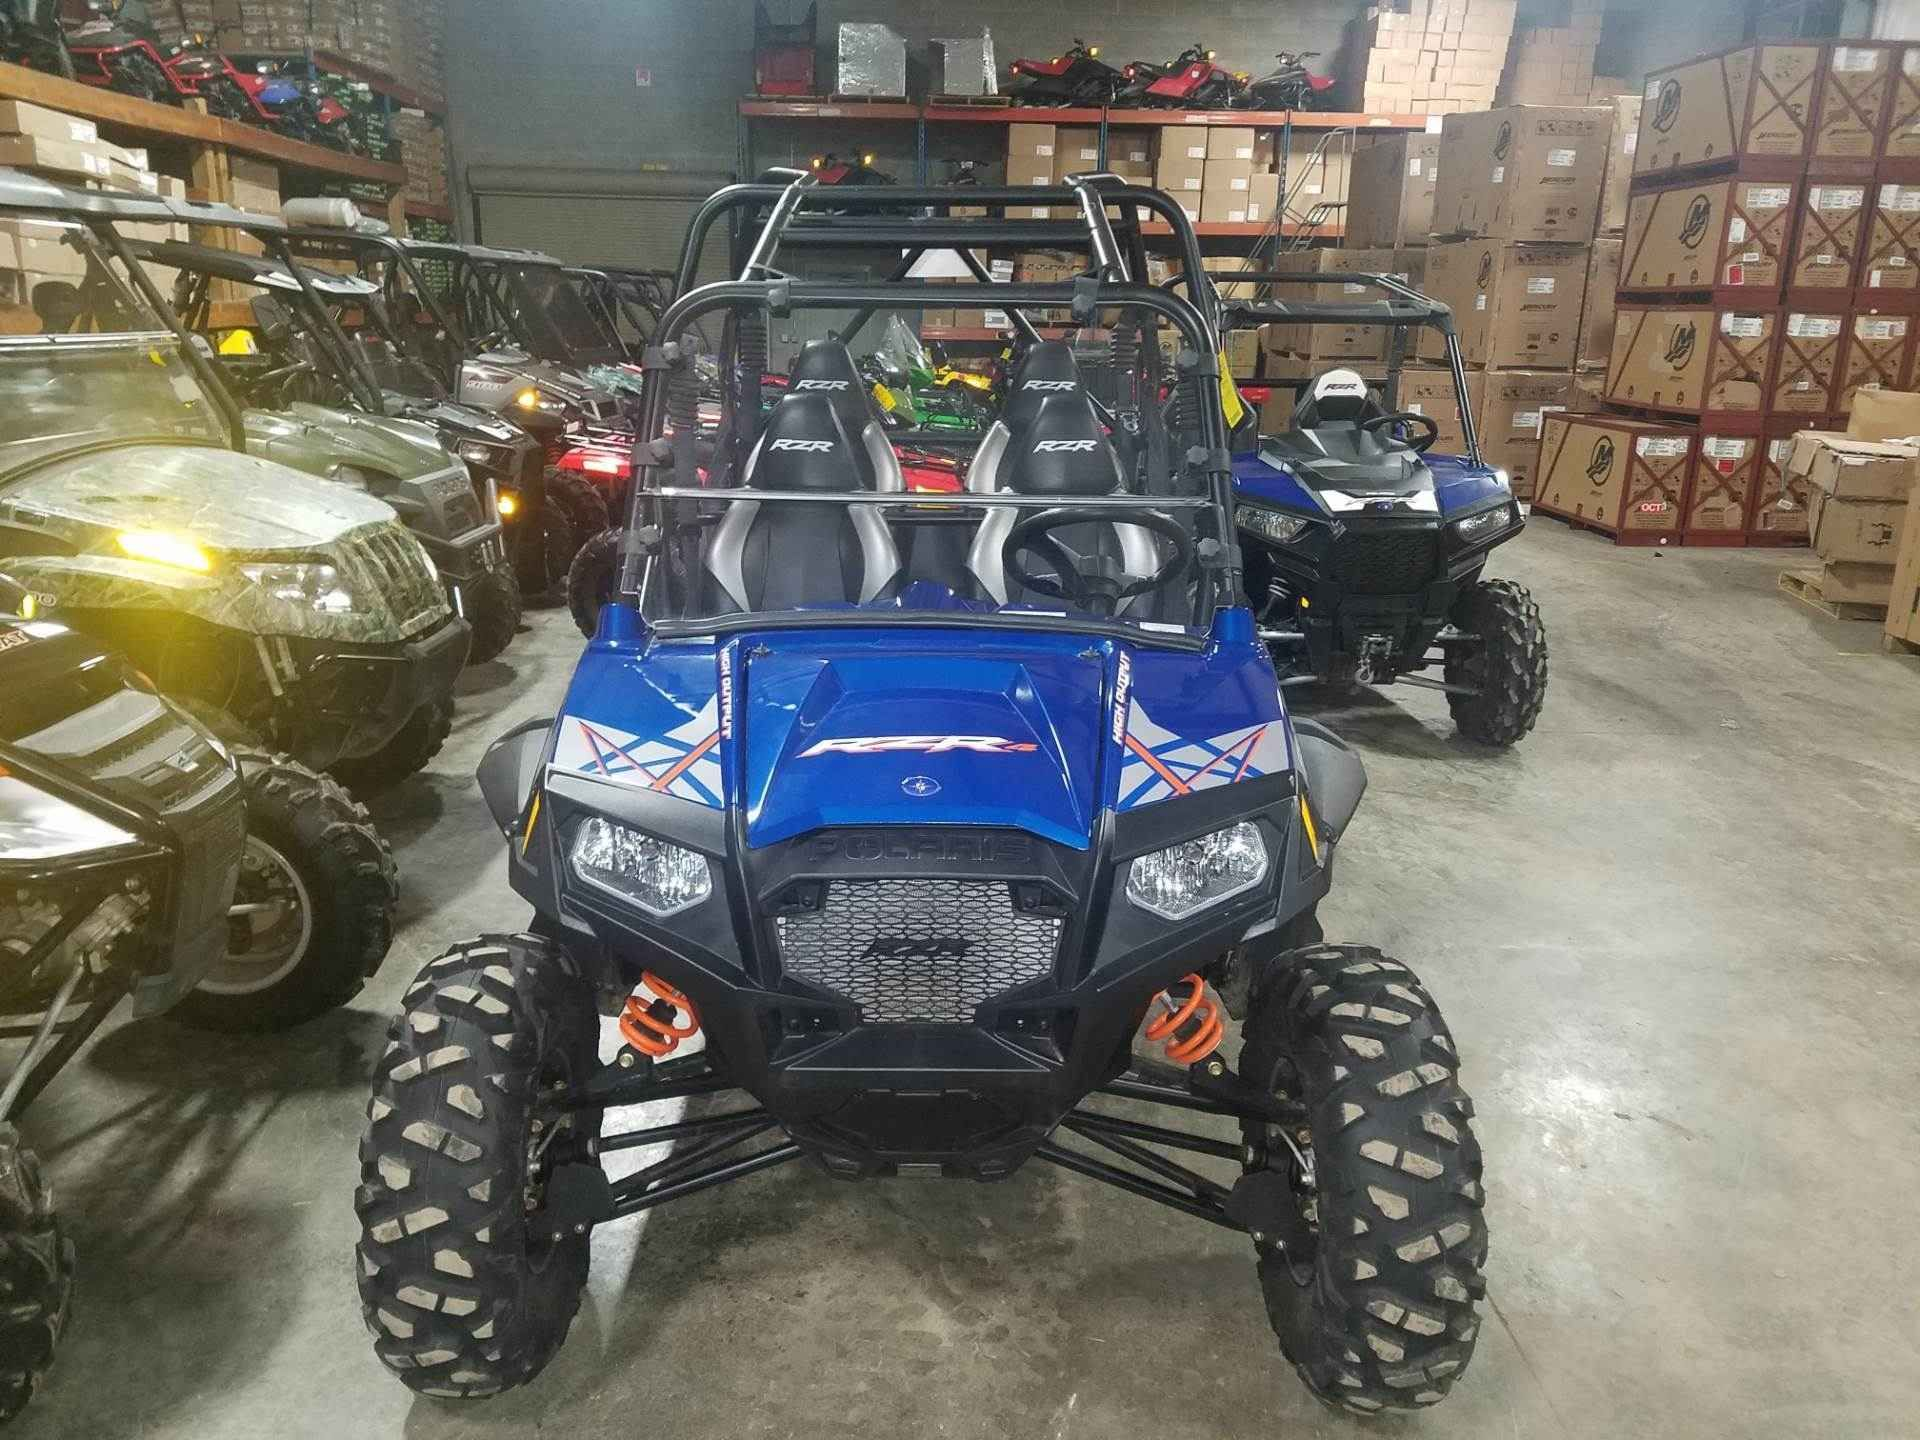 used 2013 polaris rzr 4 800 eps le atvs for sale in wisconsin  [ 1920 x 1440 Pixel ]